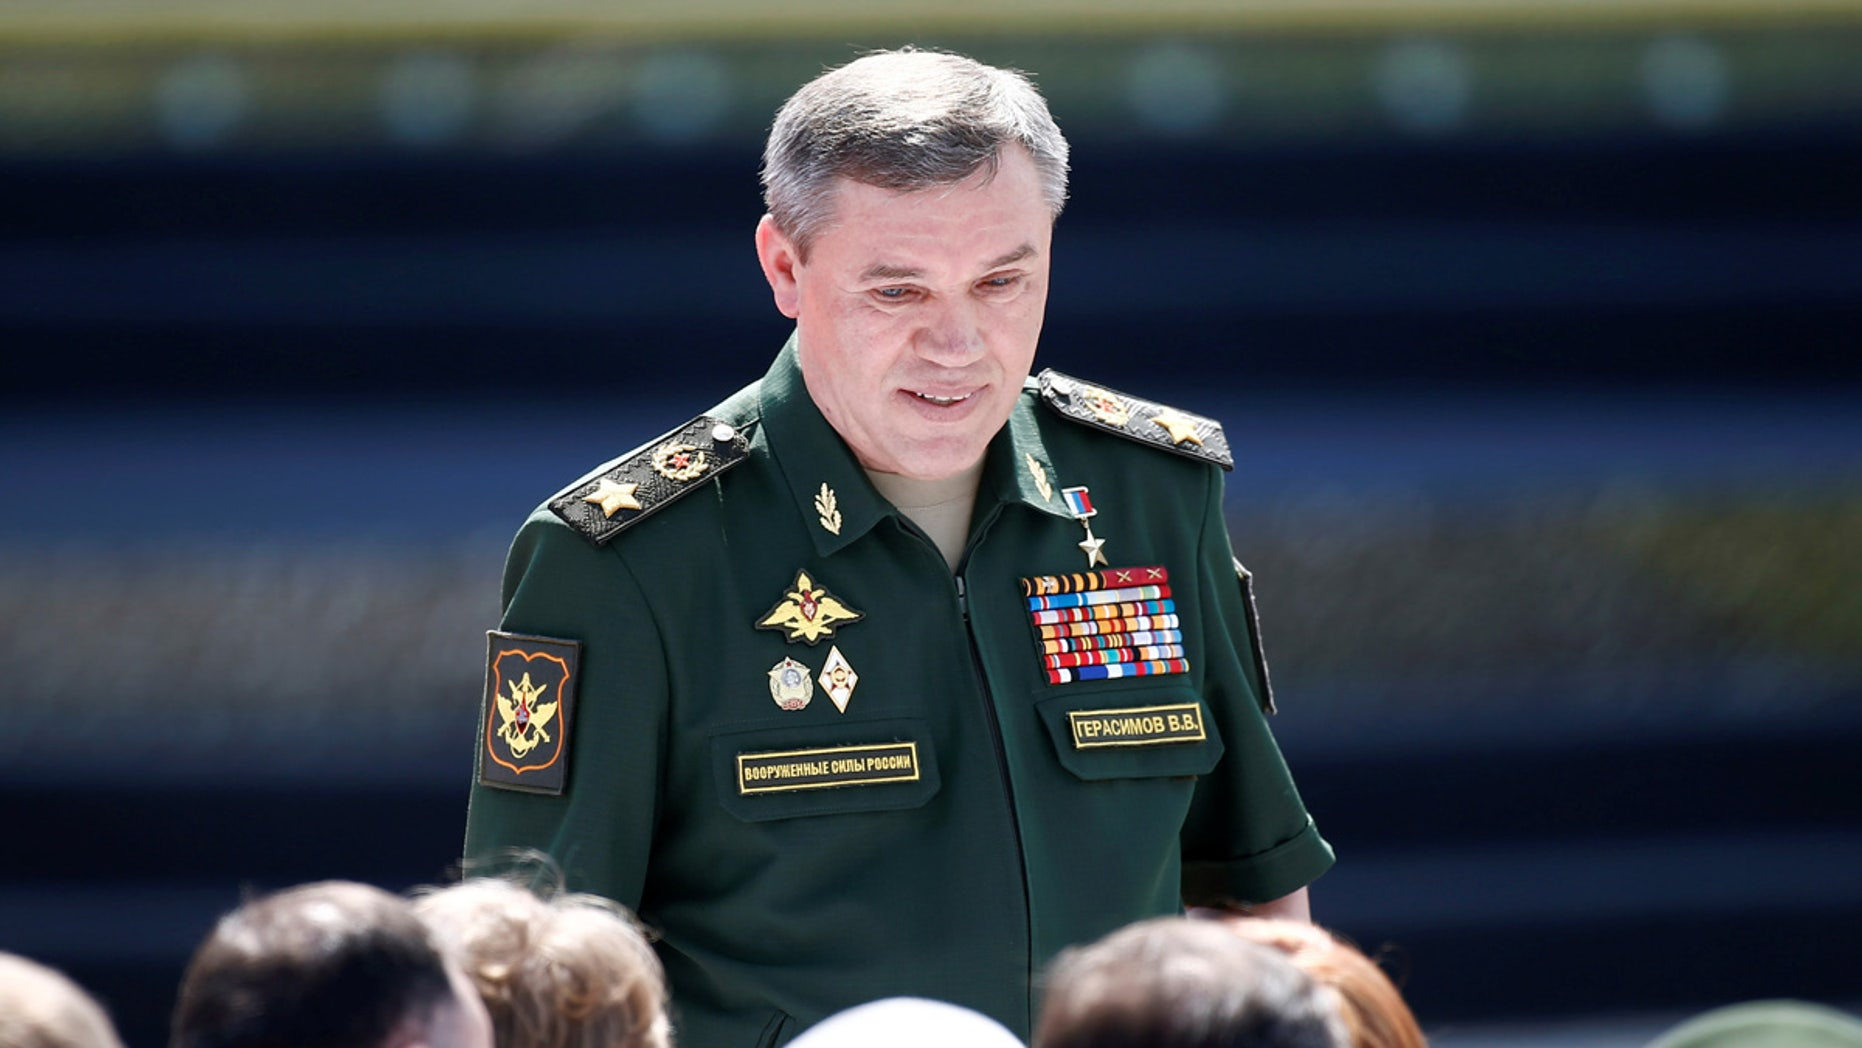 Valery Gerasimov, chief of the general staff of the Armed Forces of Russia, arrives for the opening ceremony of the International Army Games 2017 in Alabino, outside Moscow, back in late July.